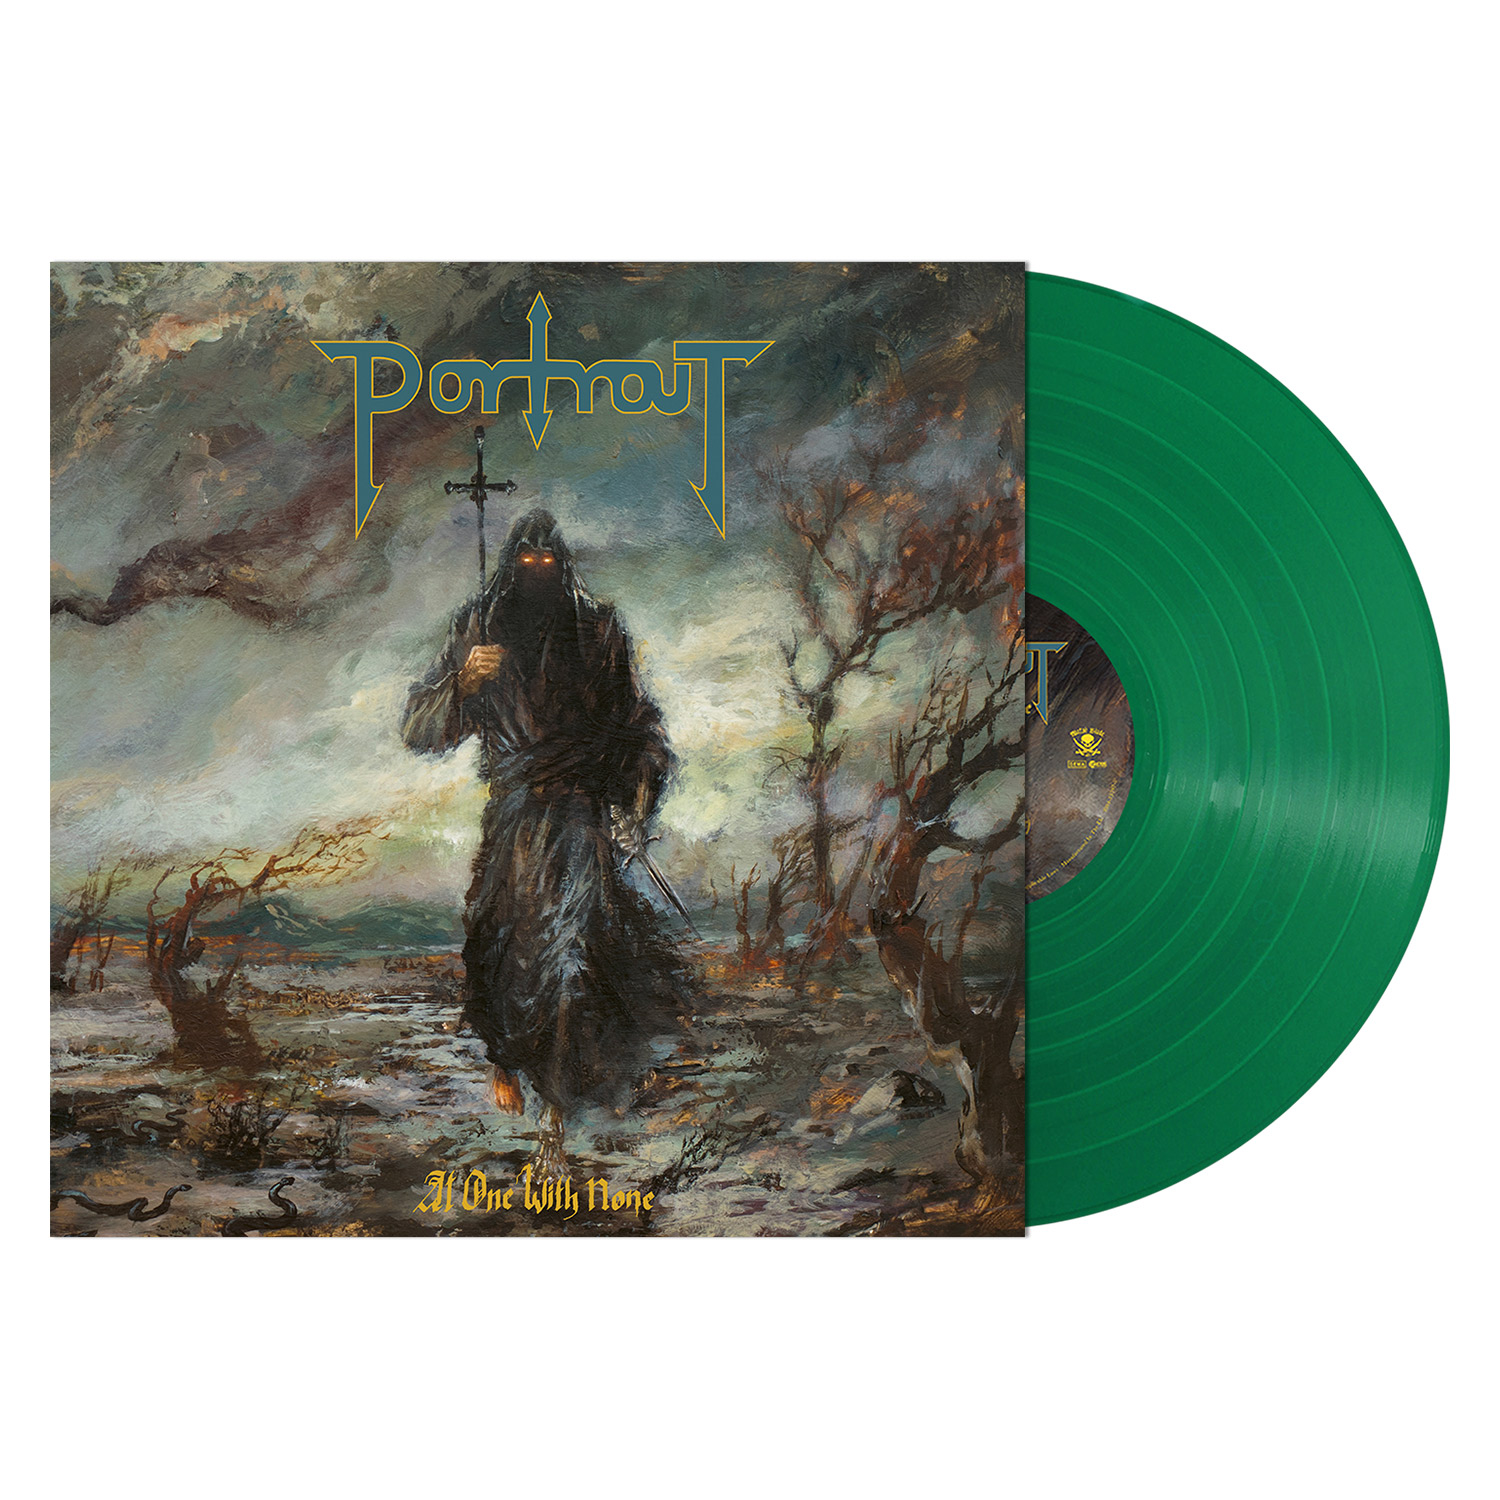 At One with None (Green Vinyl)